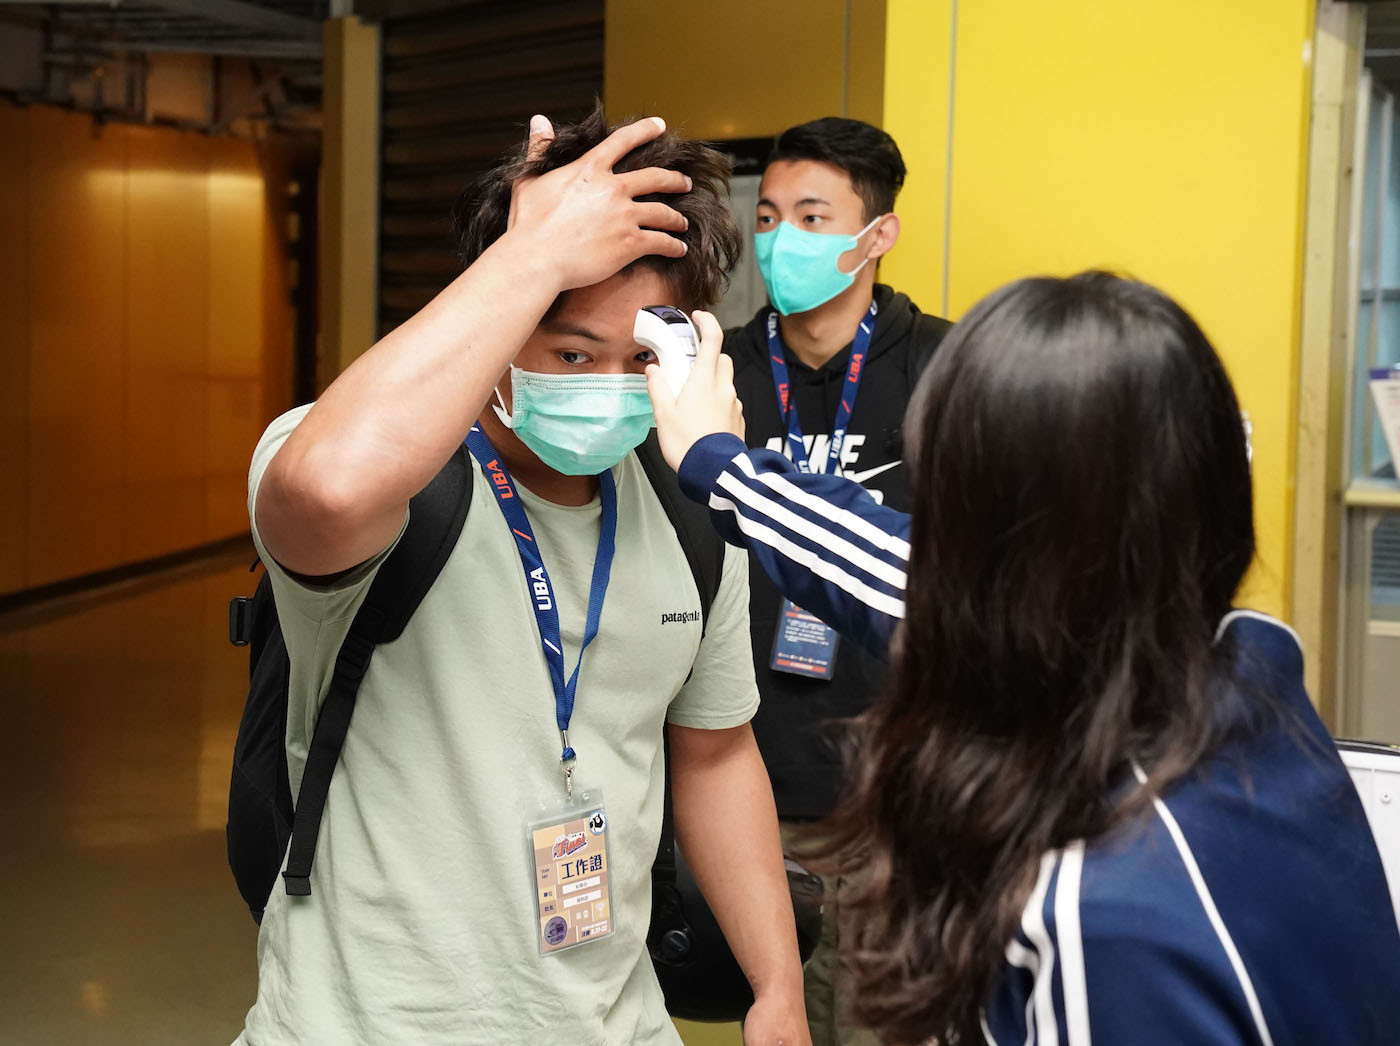 Chinese Taipei University Sports Federation continue with events during COVID-19 pandemic